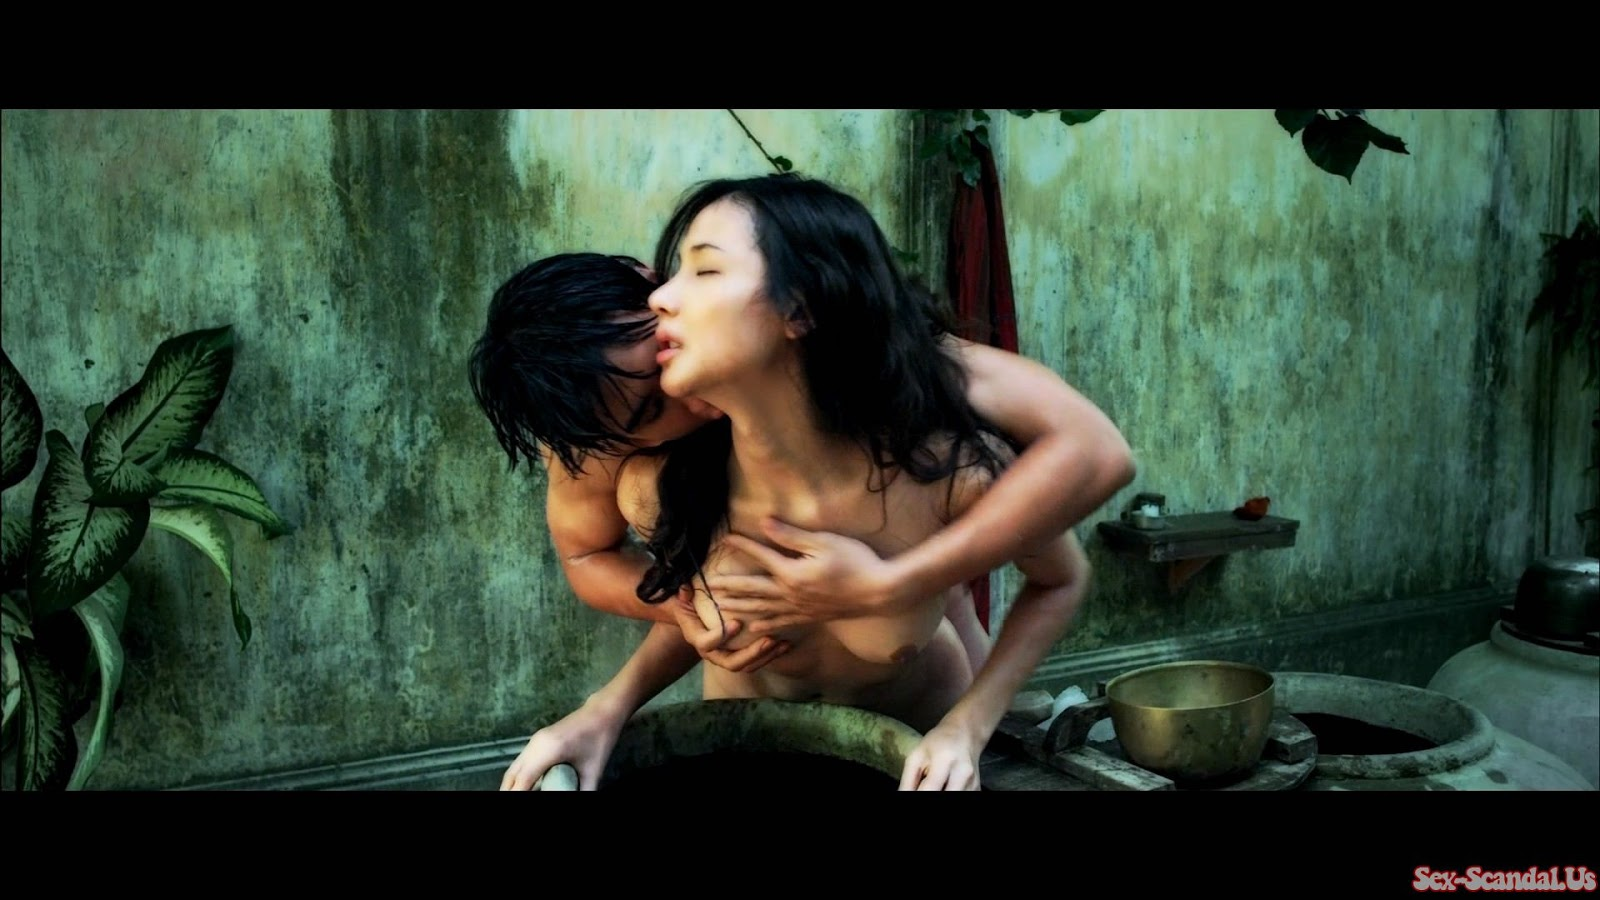 Black Chinese Sex Scandal - Sex in chinese movie   restaurantegourmand.com